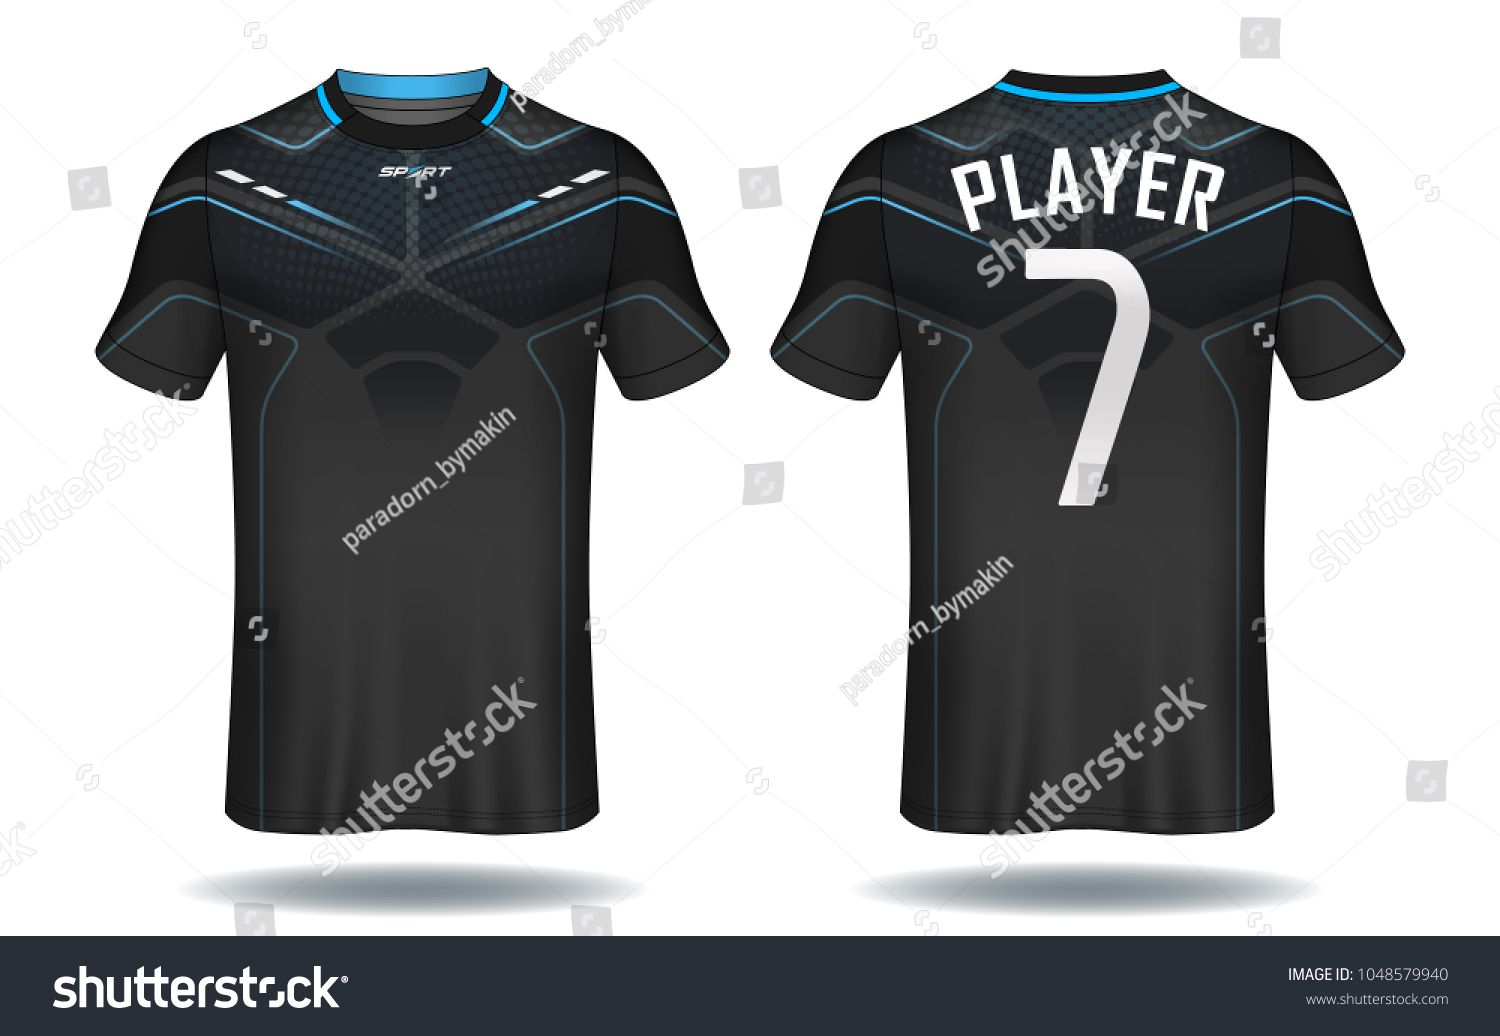 b9c1efaf2f4 Soccer jersey template.Blue and black layout sport t-shirt design ...